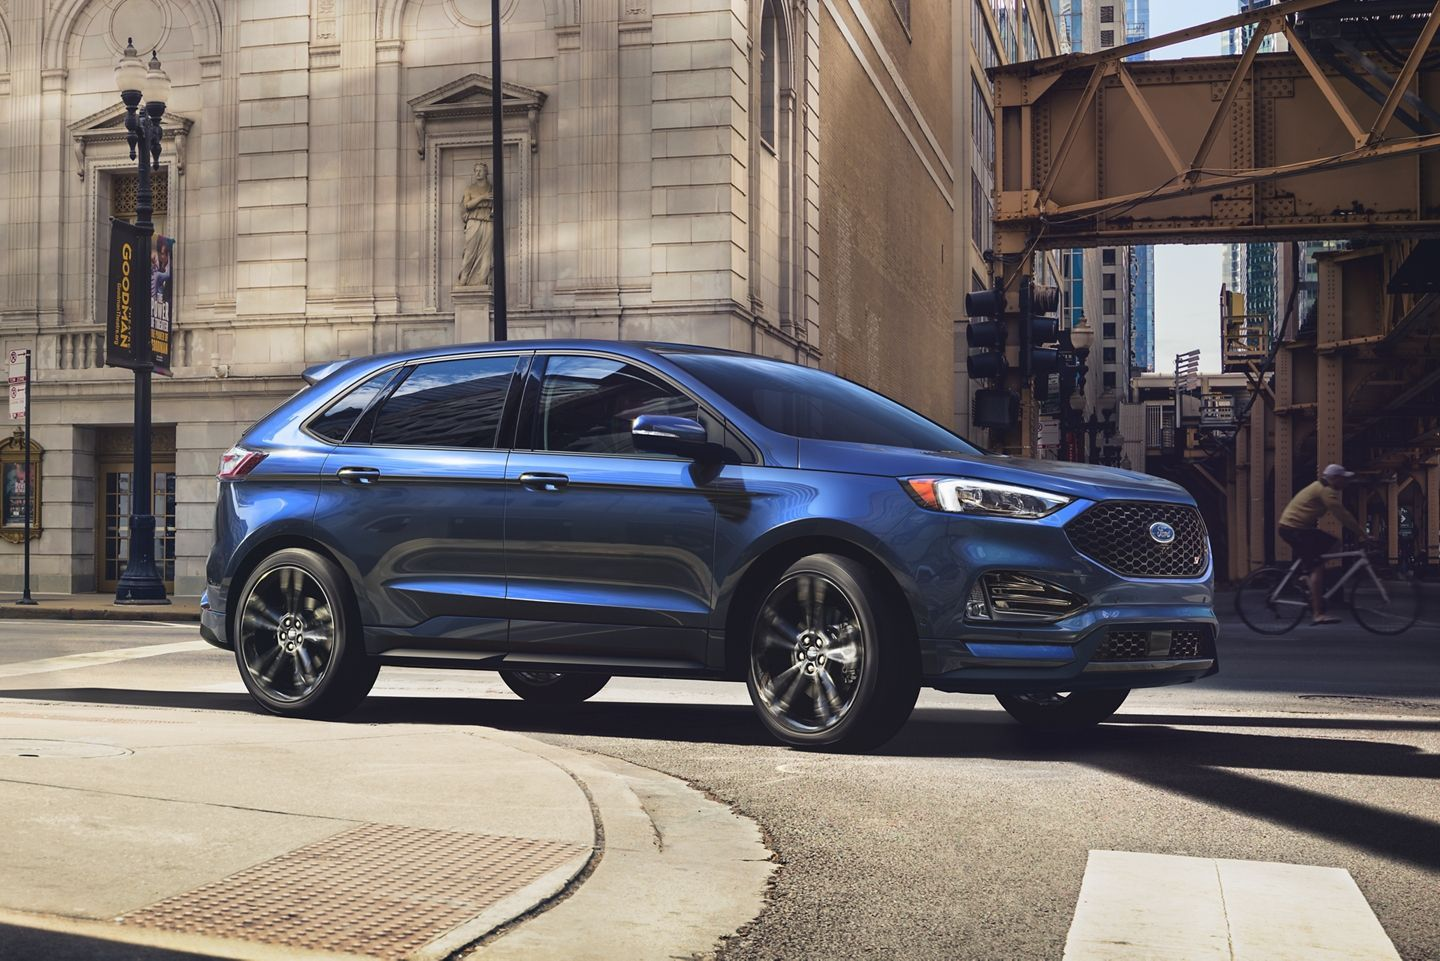 Ford Edge Axz Plan Bill Brown Ford Axzplan Bbford Affordablecars Fordaxz Fordaxzplan Azplan Billbrownf Ford Edge Best Suv For Family Ford Edge Sport